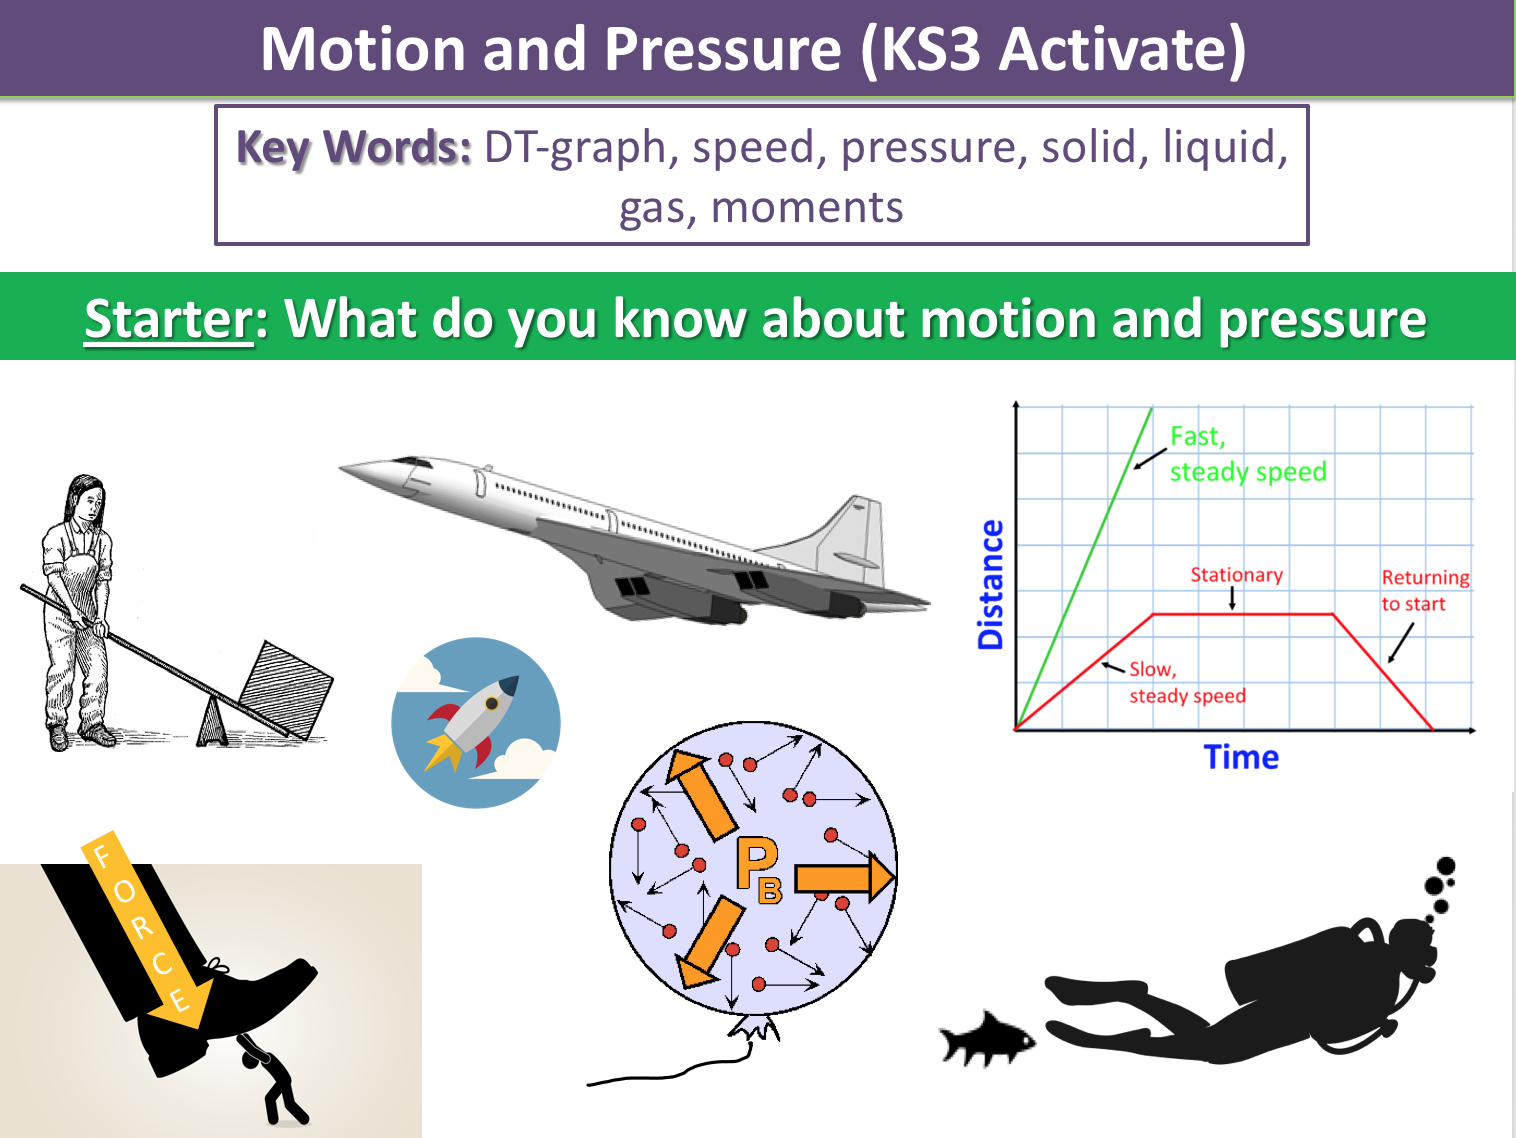 Motion and Pressure (Activate KS3)